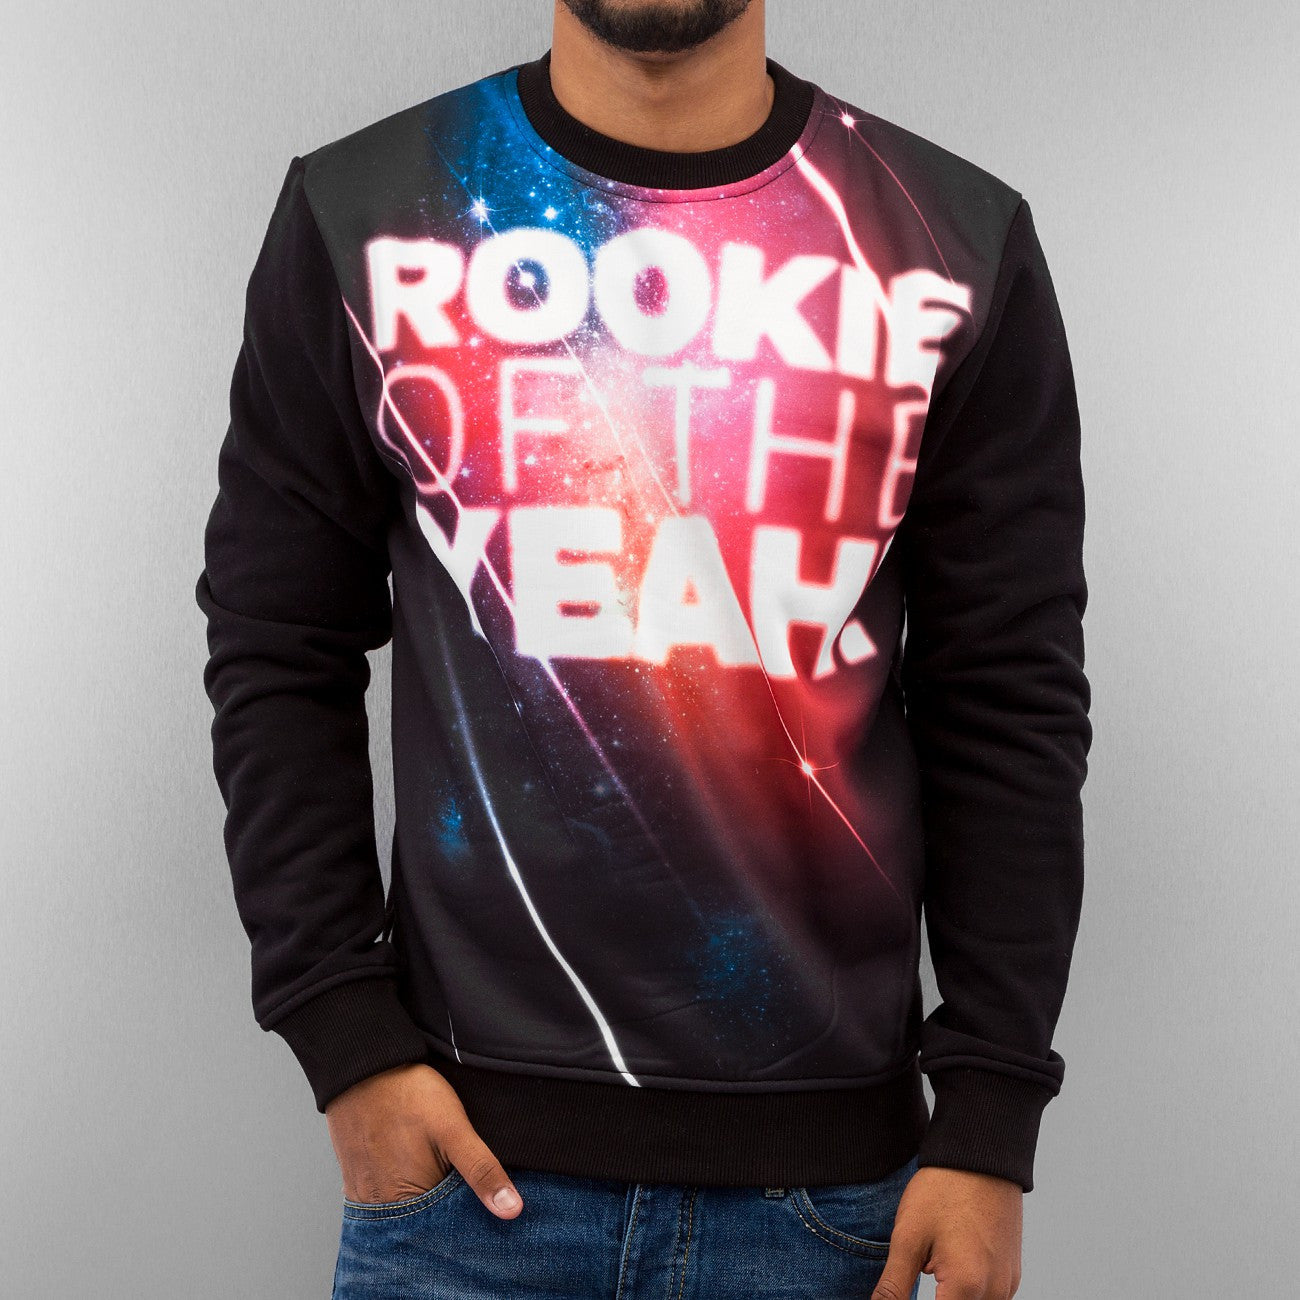 Just Rhyse Rookie Of The Yeah! Sweatshirt  Black